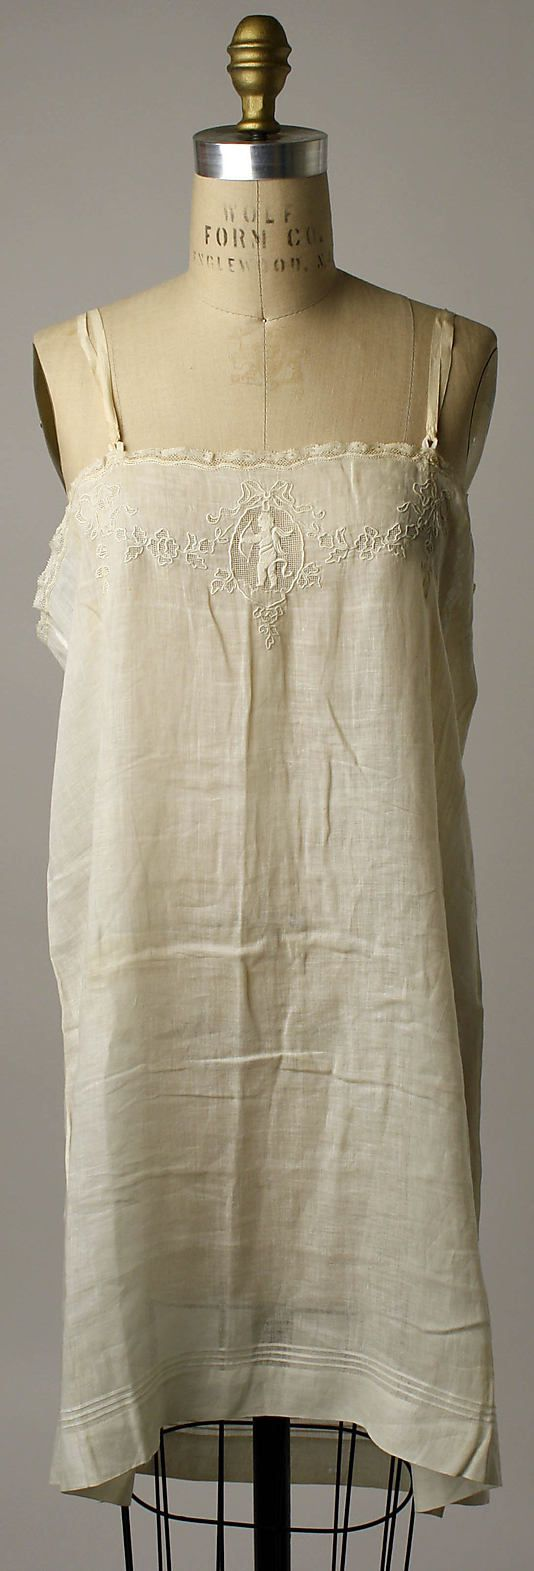 Chemise Date: 1920–23 Culture: French Medium: [no medium available] Dimensions: [no dimensions available] Credit Line: Gift of Mrs. Aline Bernstein, 1946 Accession Number: C.I.46.80.1a, b